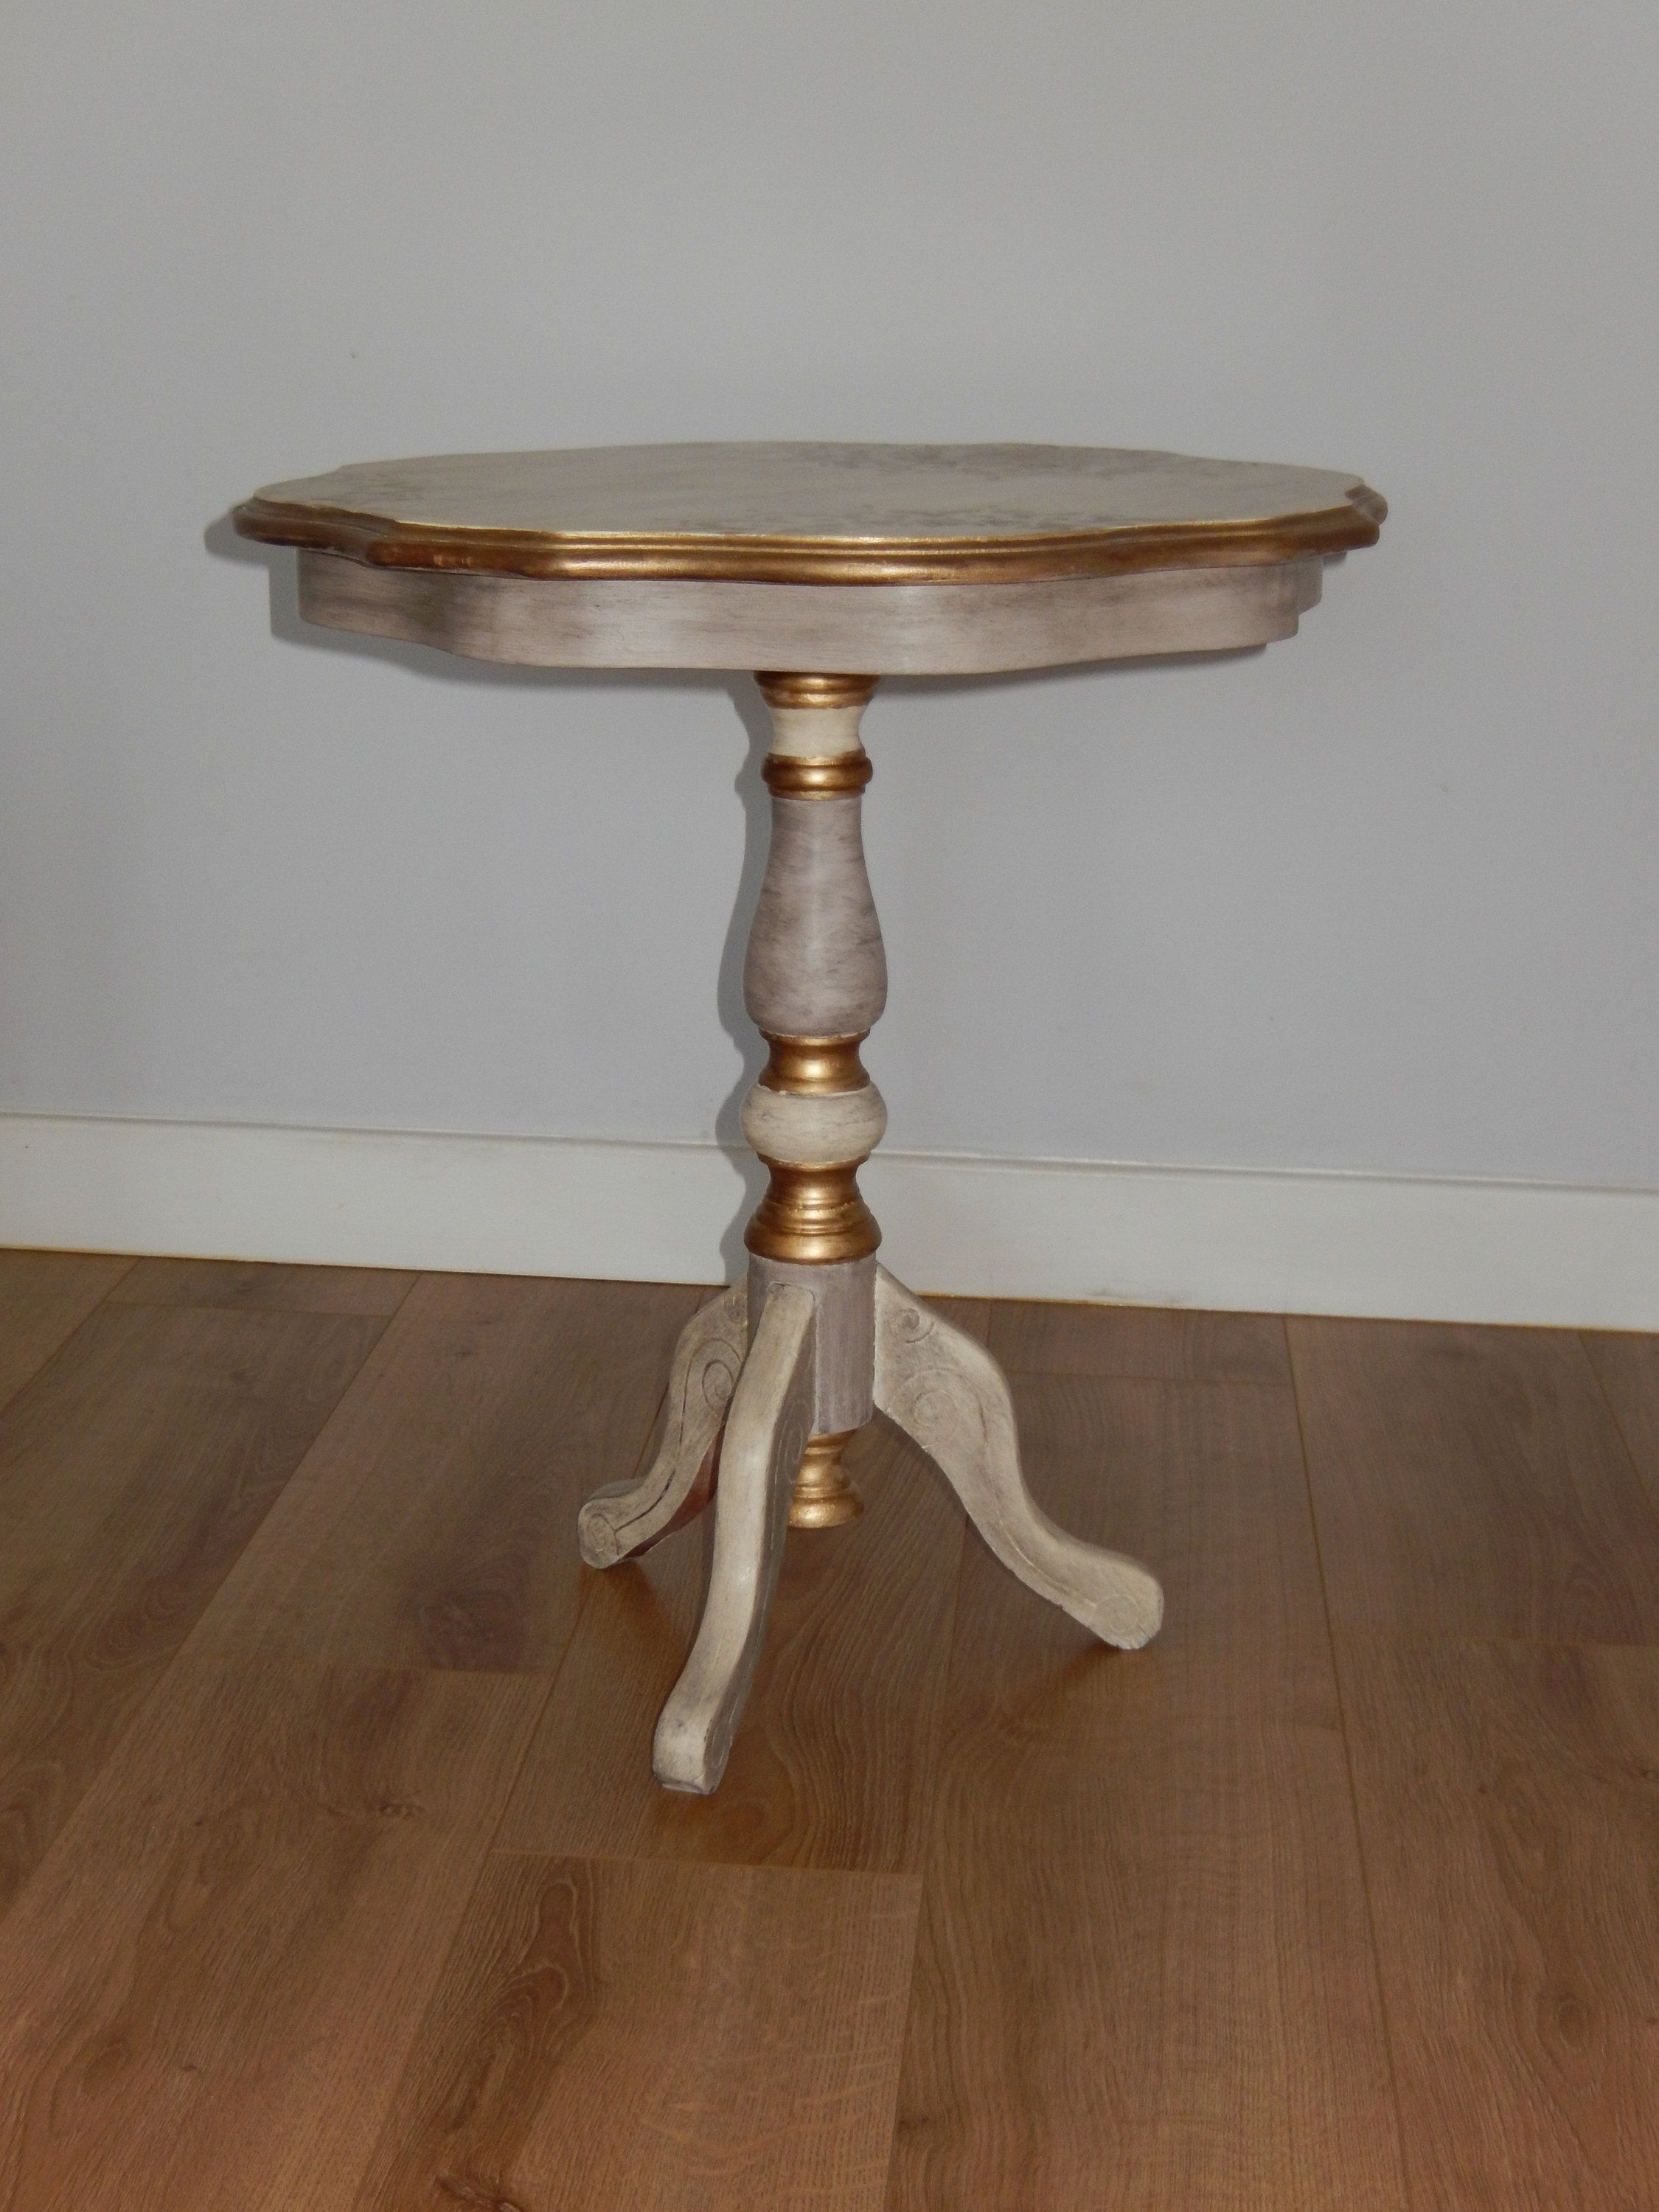 Classy round cream pedestal sidecoffee table with hessian